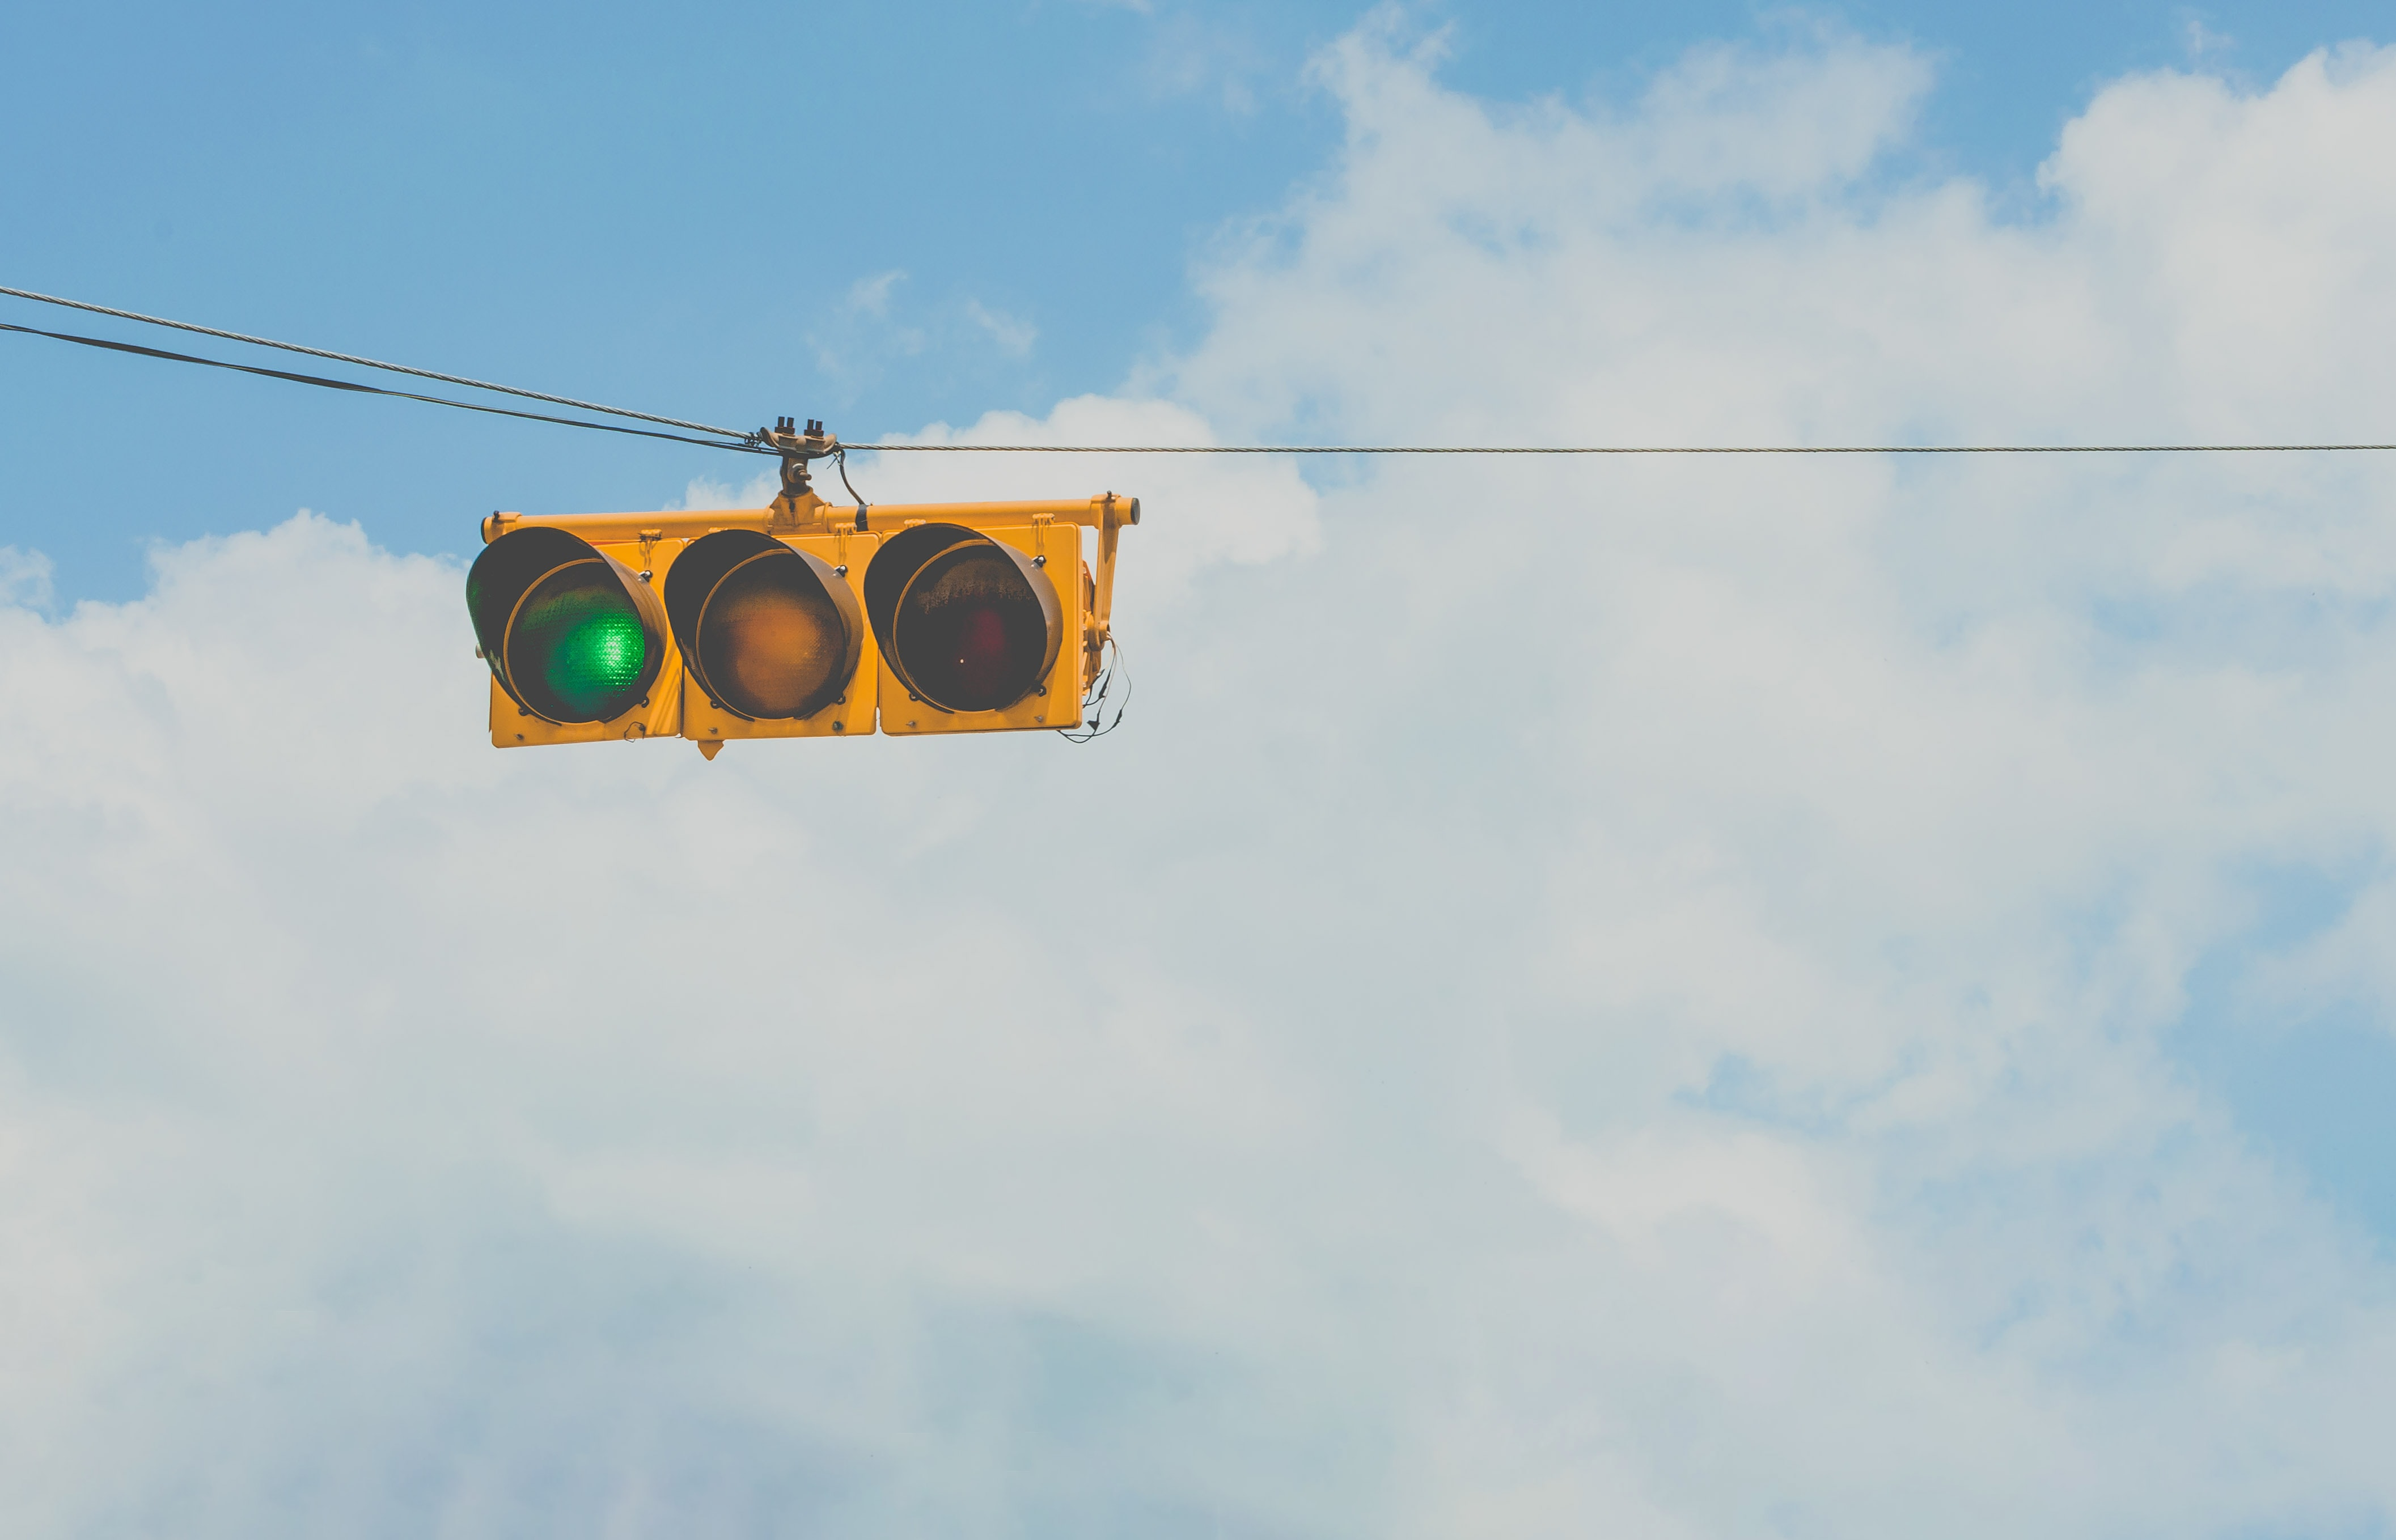 Horizontal traffic light with green lit up